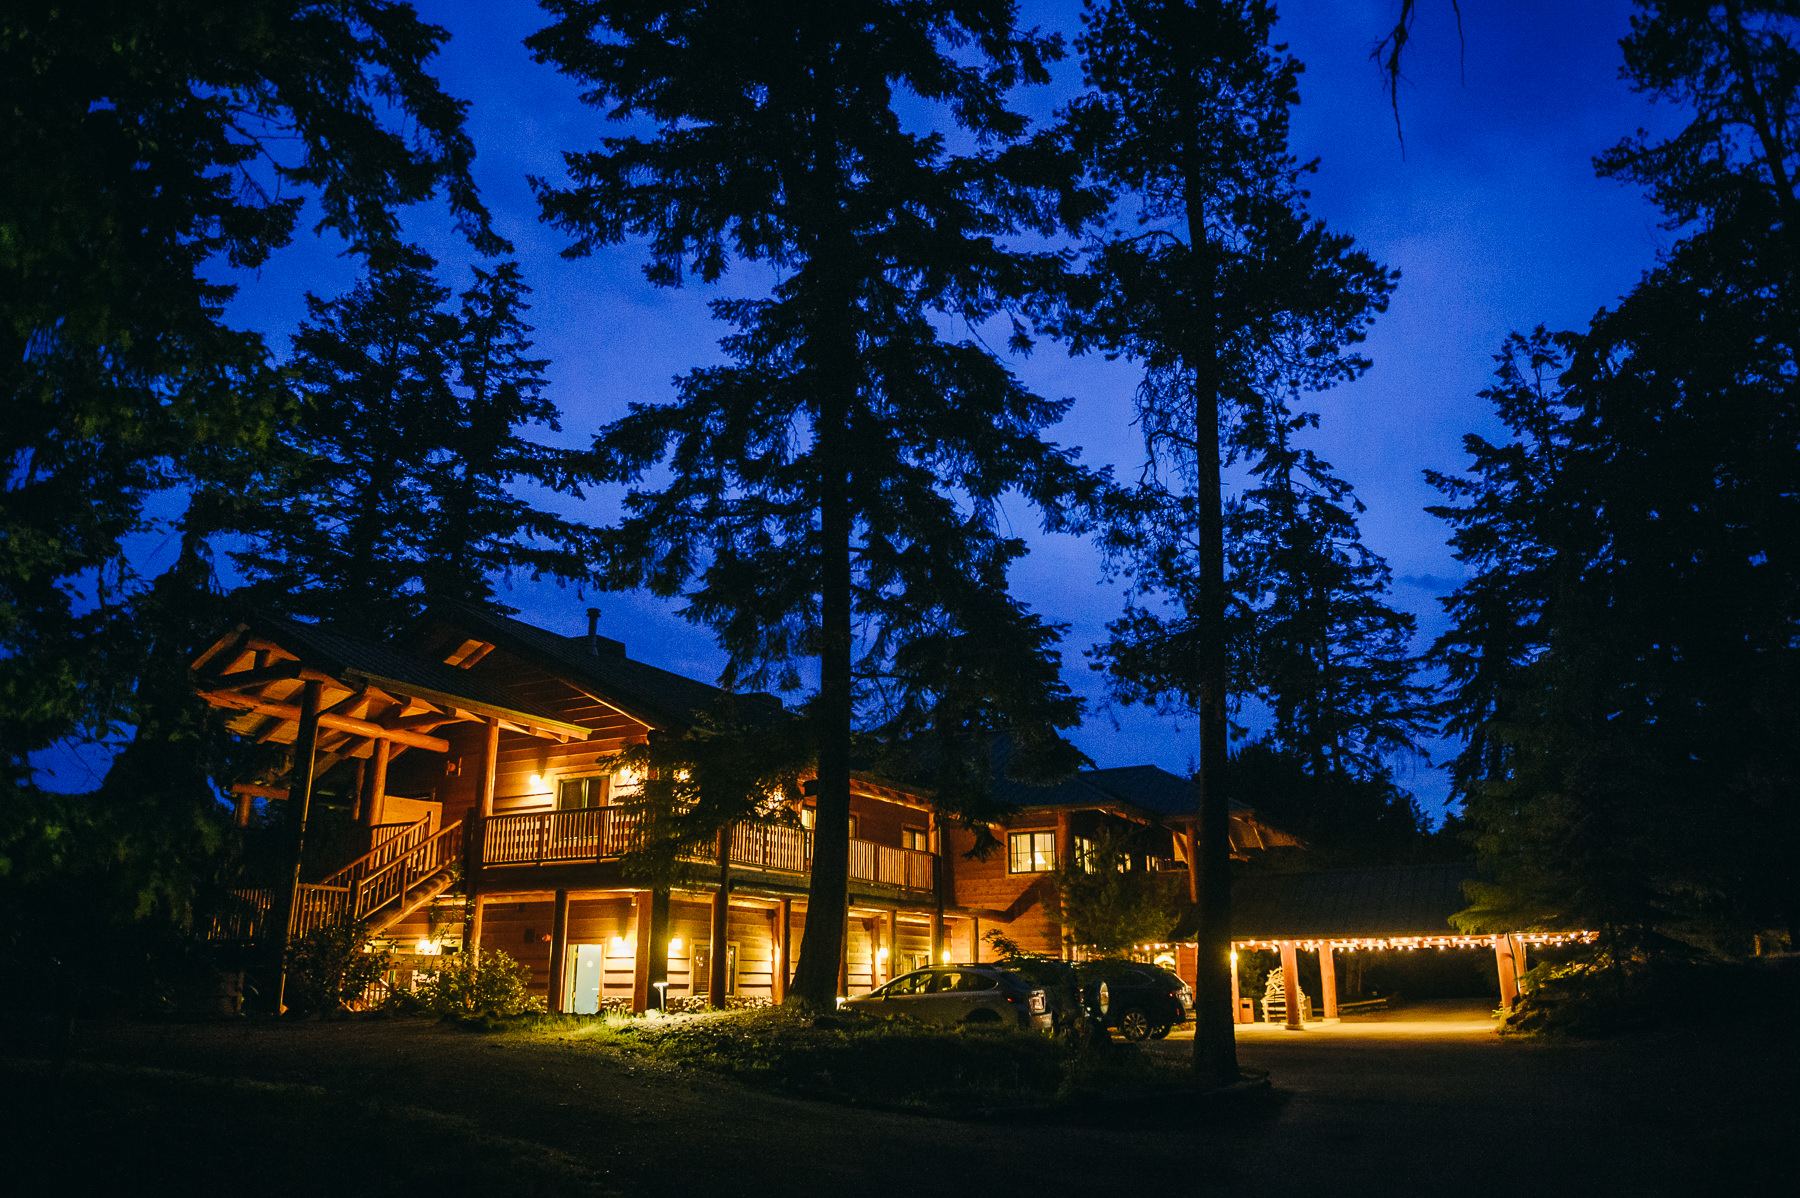 lake dale resort lodge